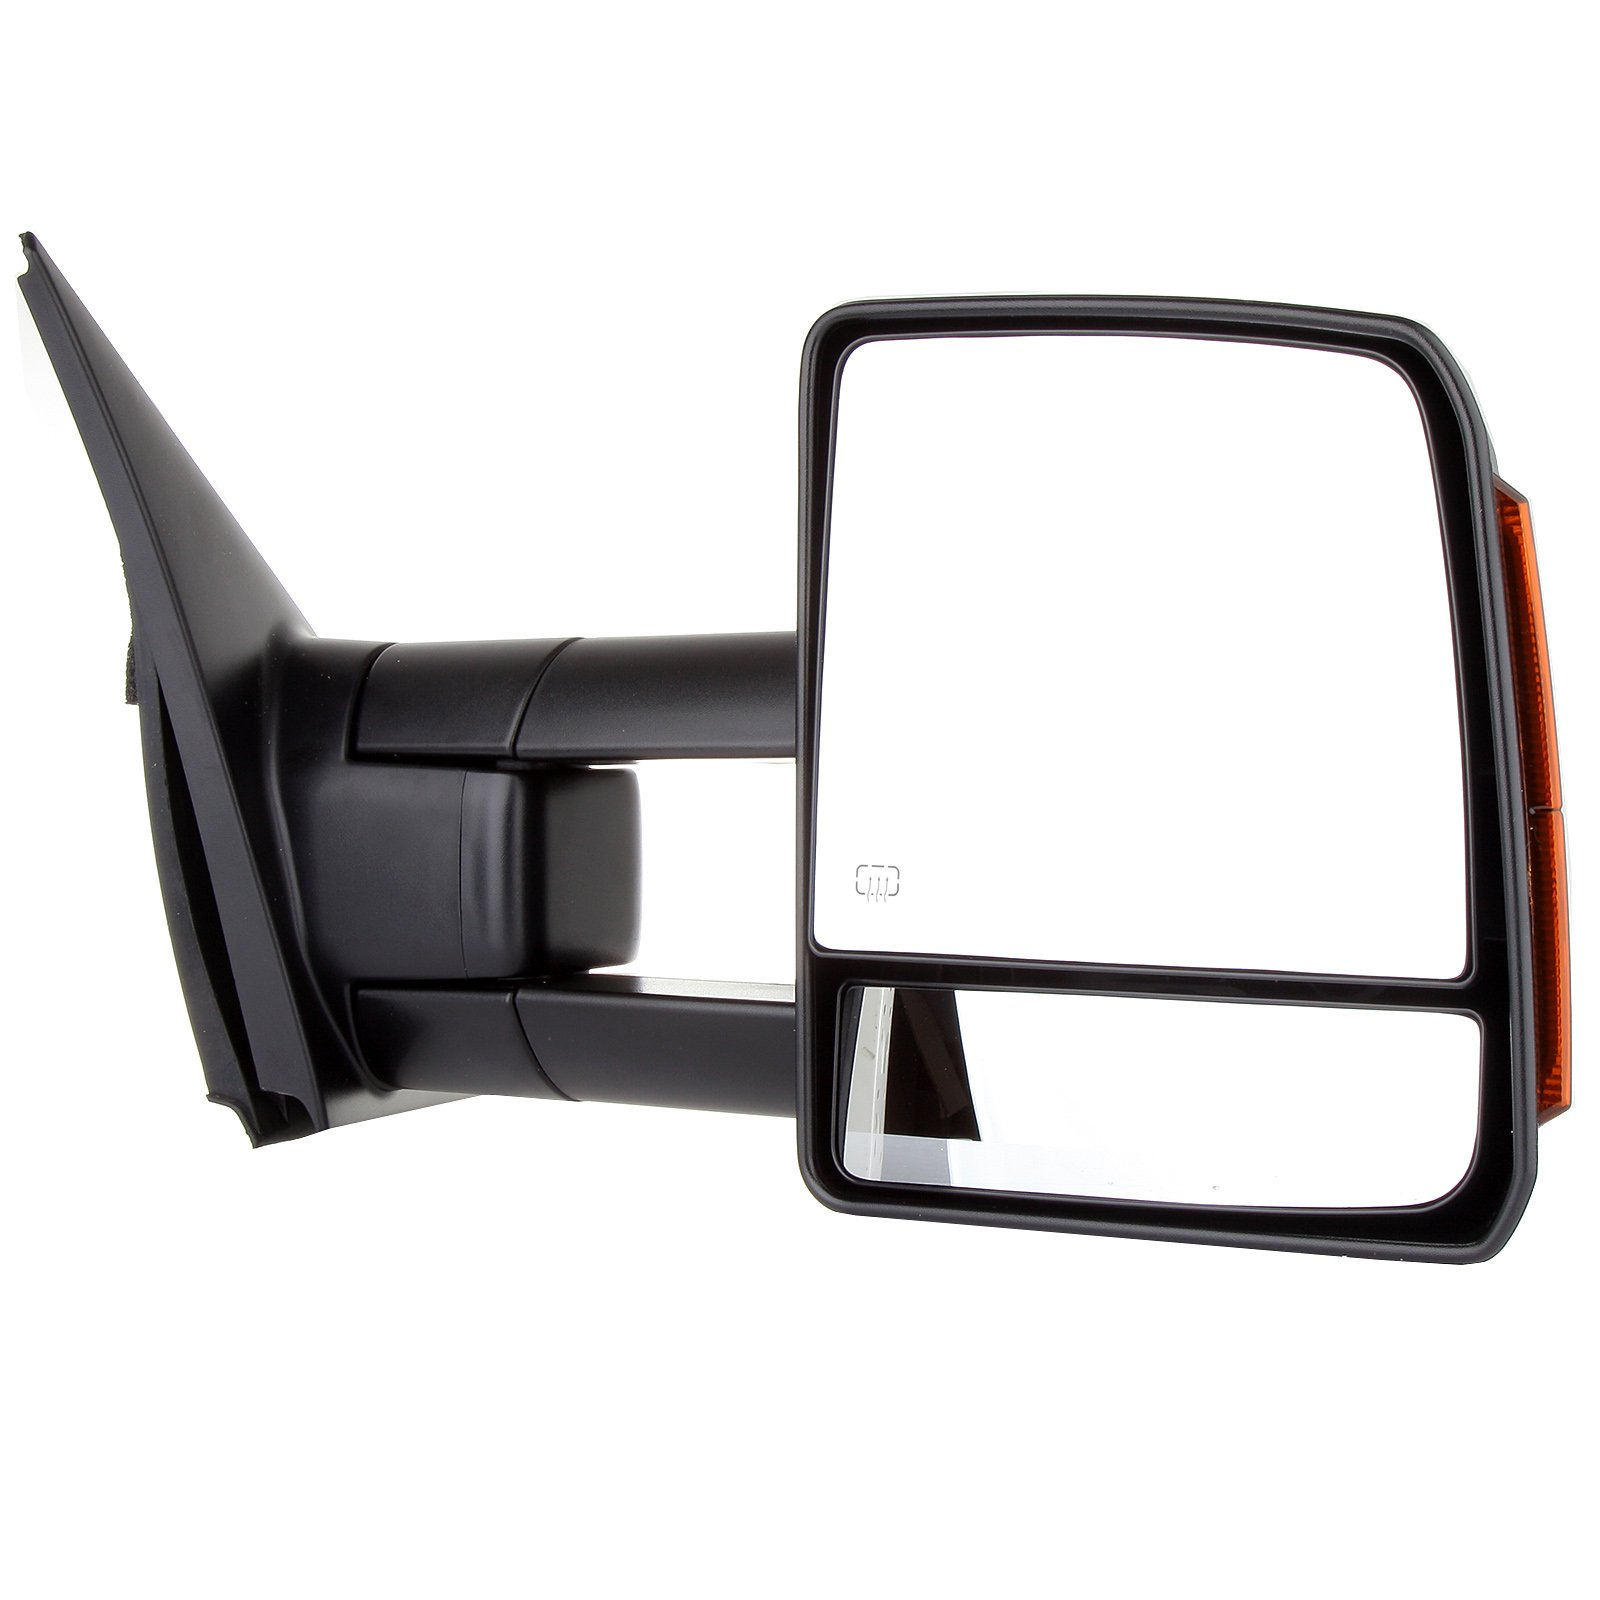 SCITOO fit Toyota Towing Mirrors Rear View Mirrors fit 2007-2016 Toyota Tundra Truck Larger Glass Power Control, Heated Turn Signal Manual Extending Folding (black) by SCITOO (Image #3)